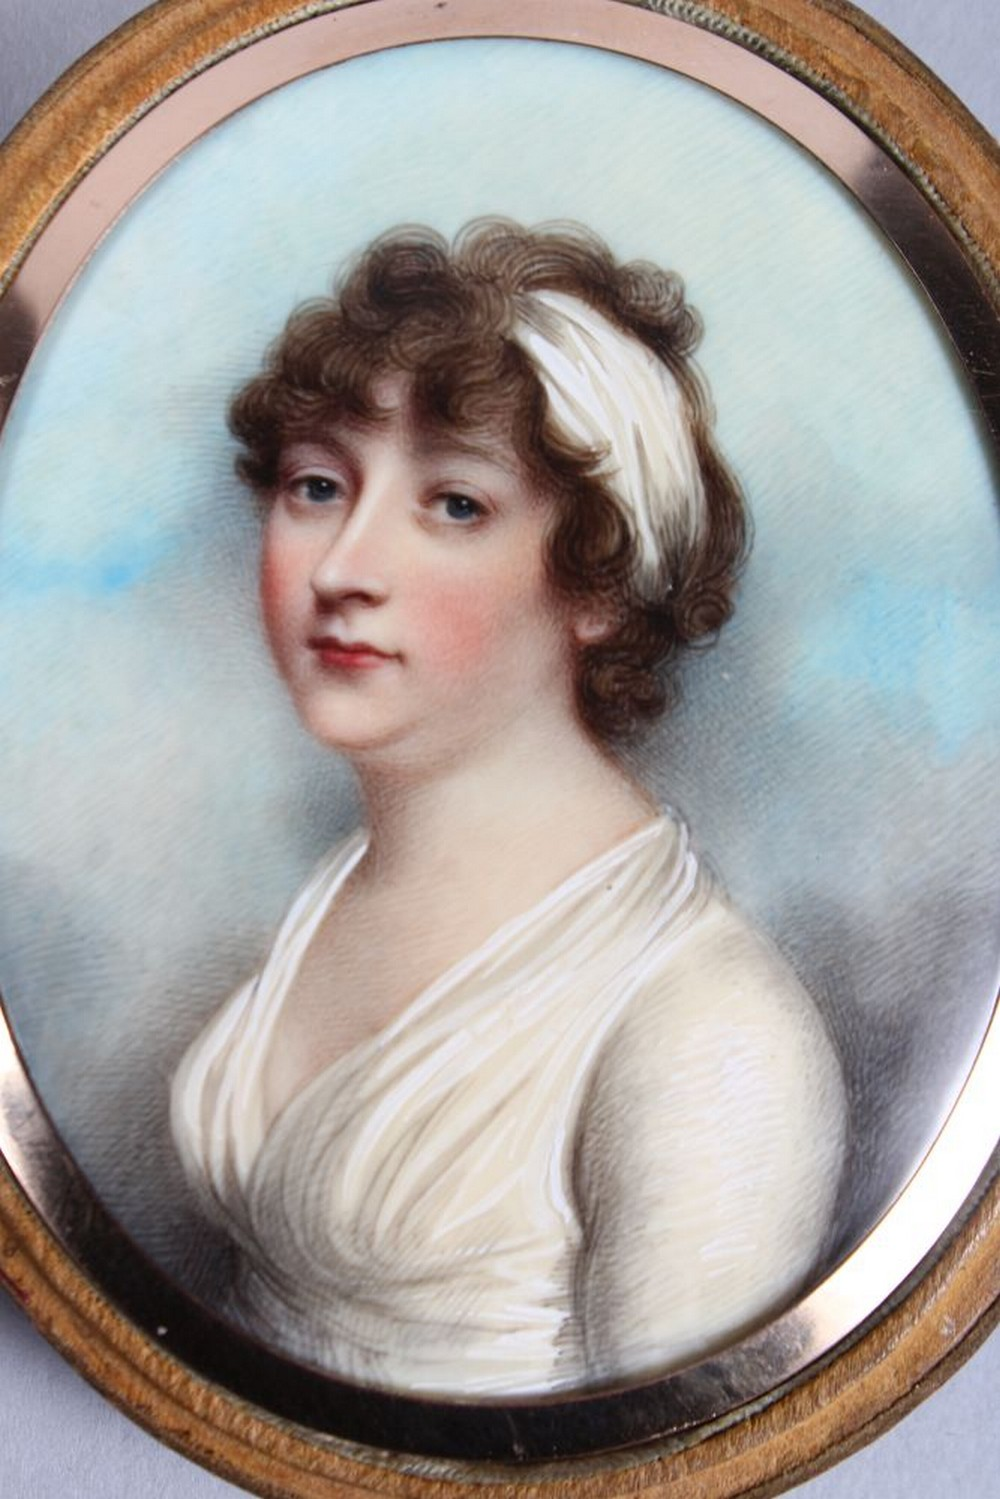 ANDREW PLIMER (1763 - 1837) A FINE OVAL PORTRAIT OF LADY GRAHAM, wearing a white headband and - Image 2 of 4